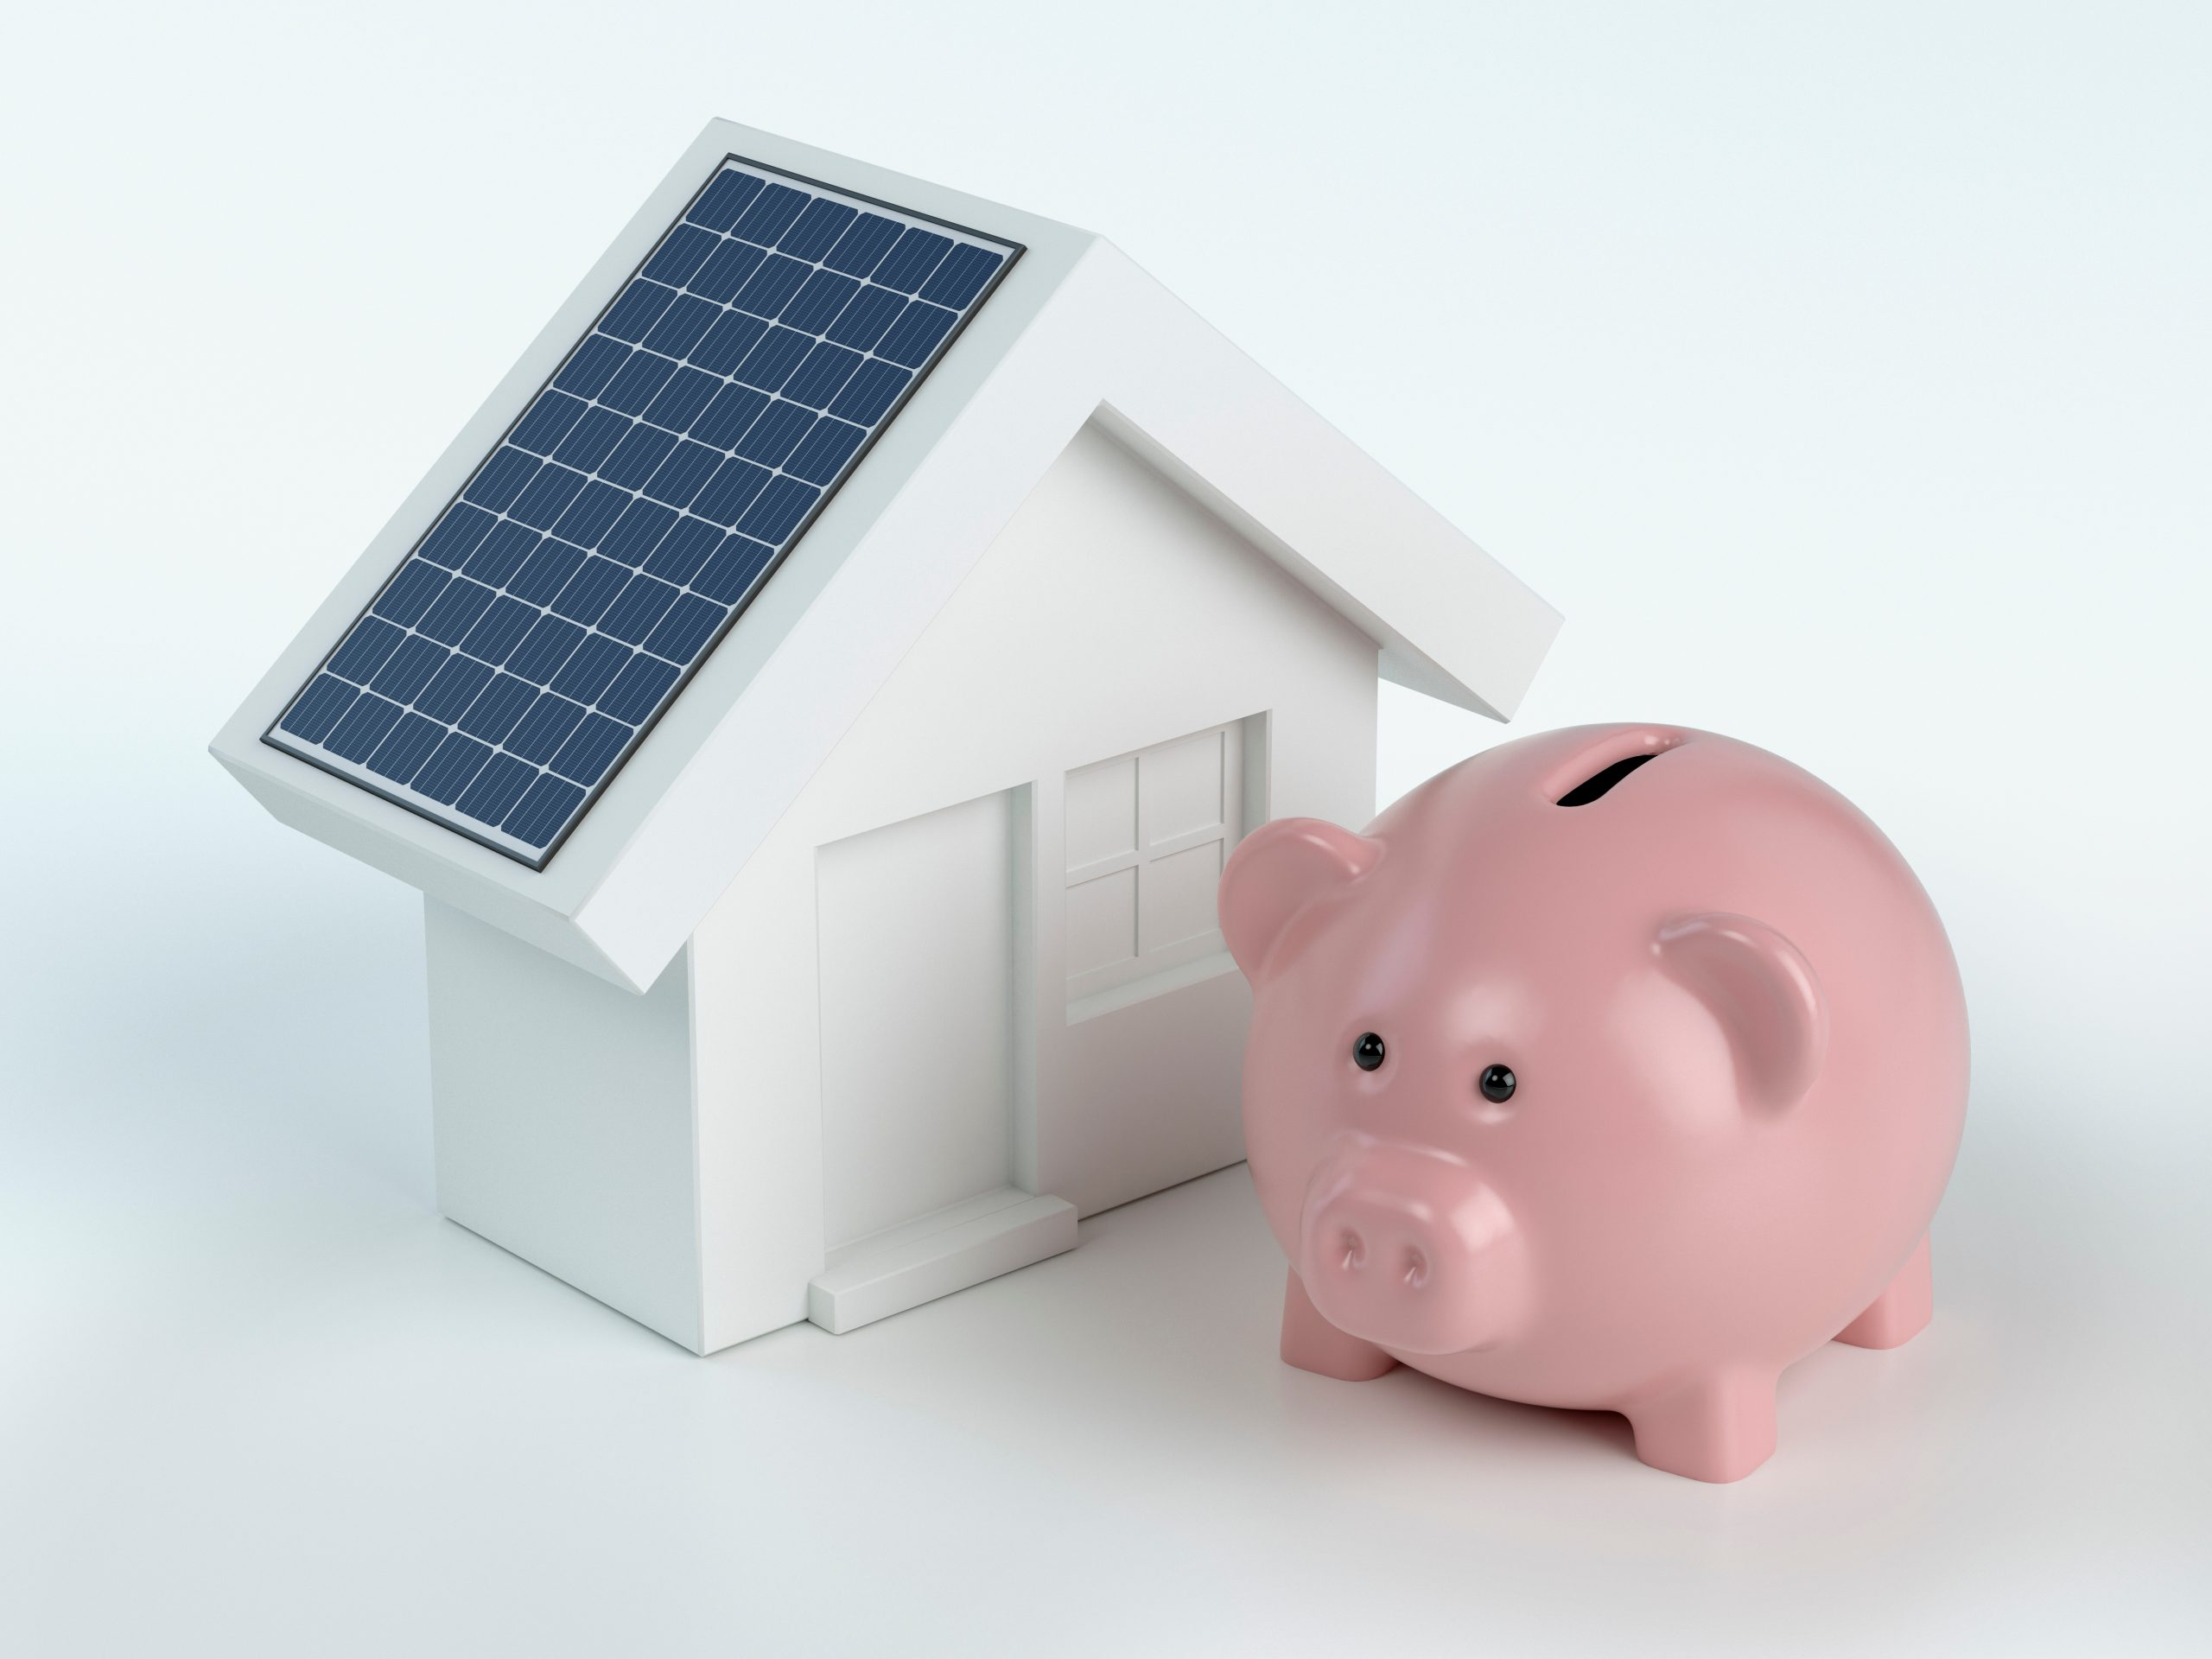 Go Solar: Top 5 Benefits When You Make the Switch